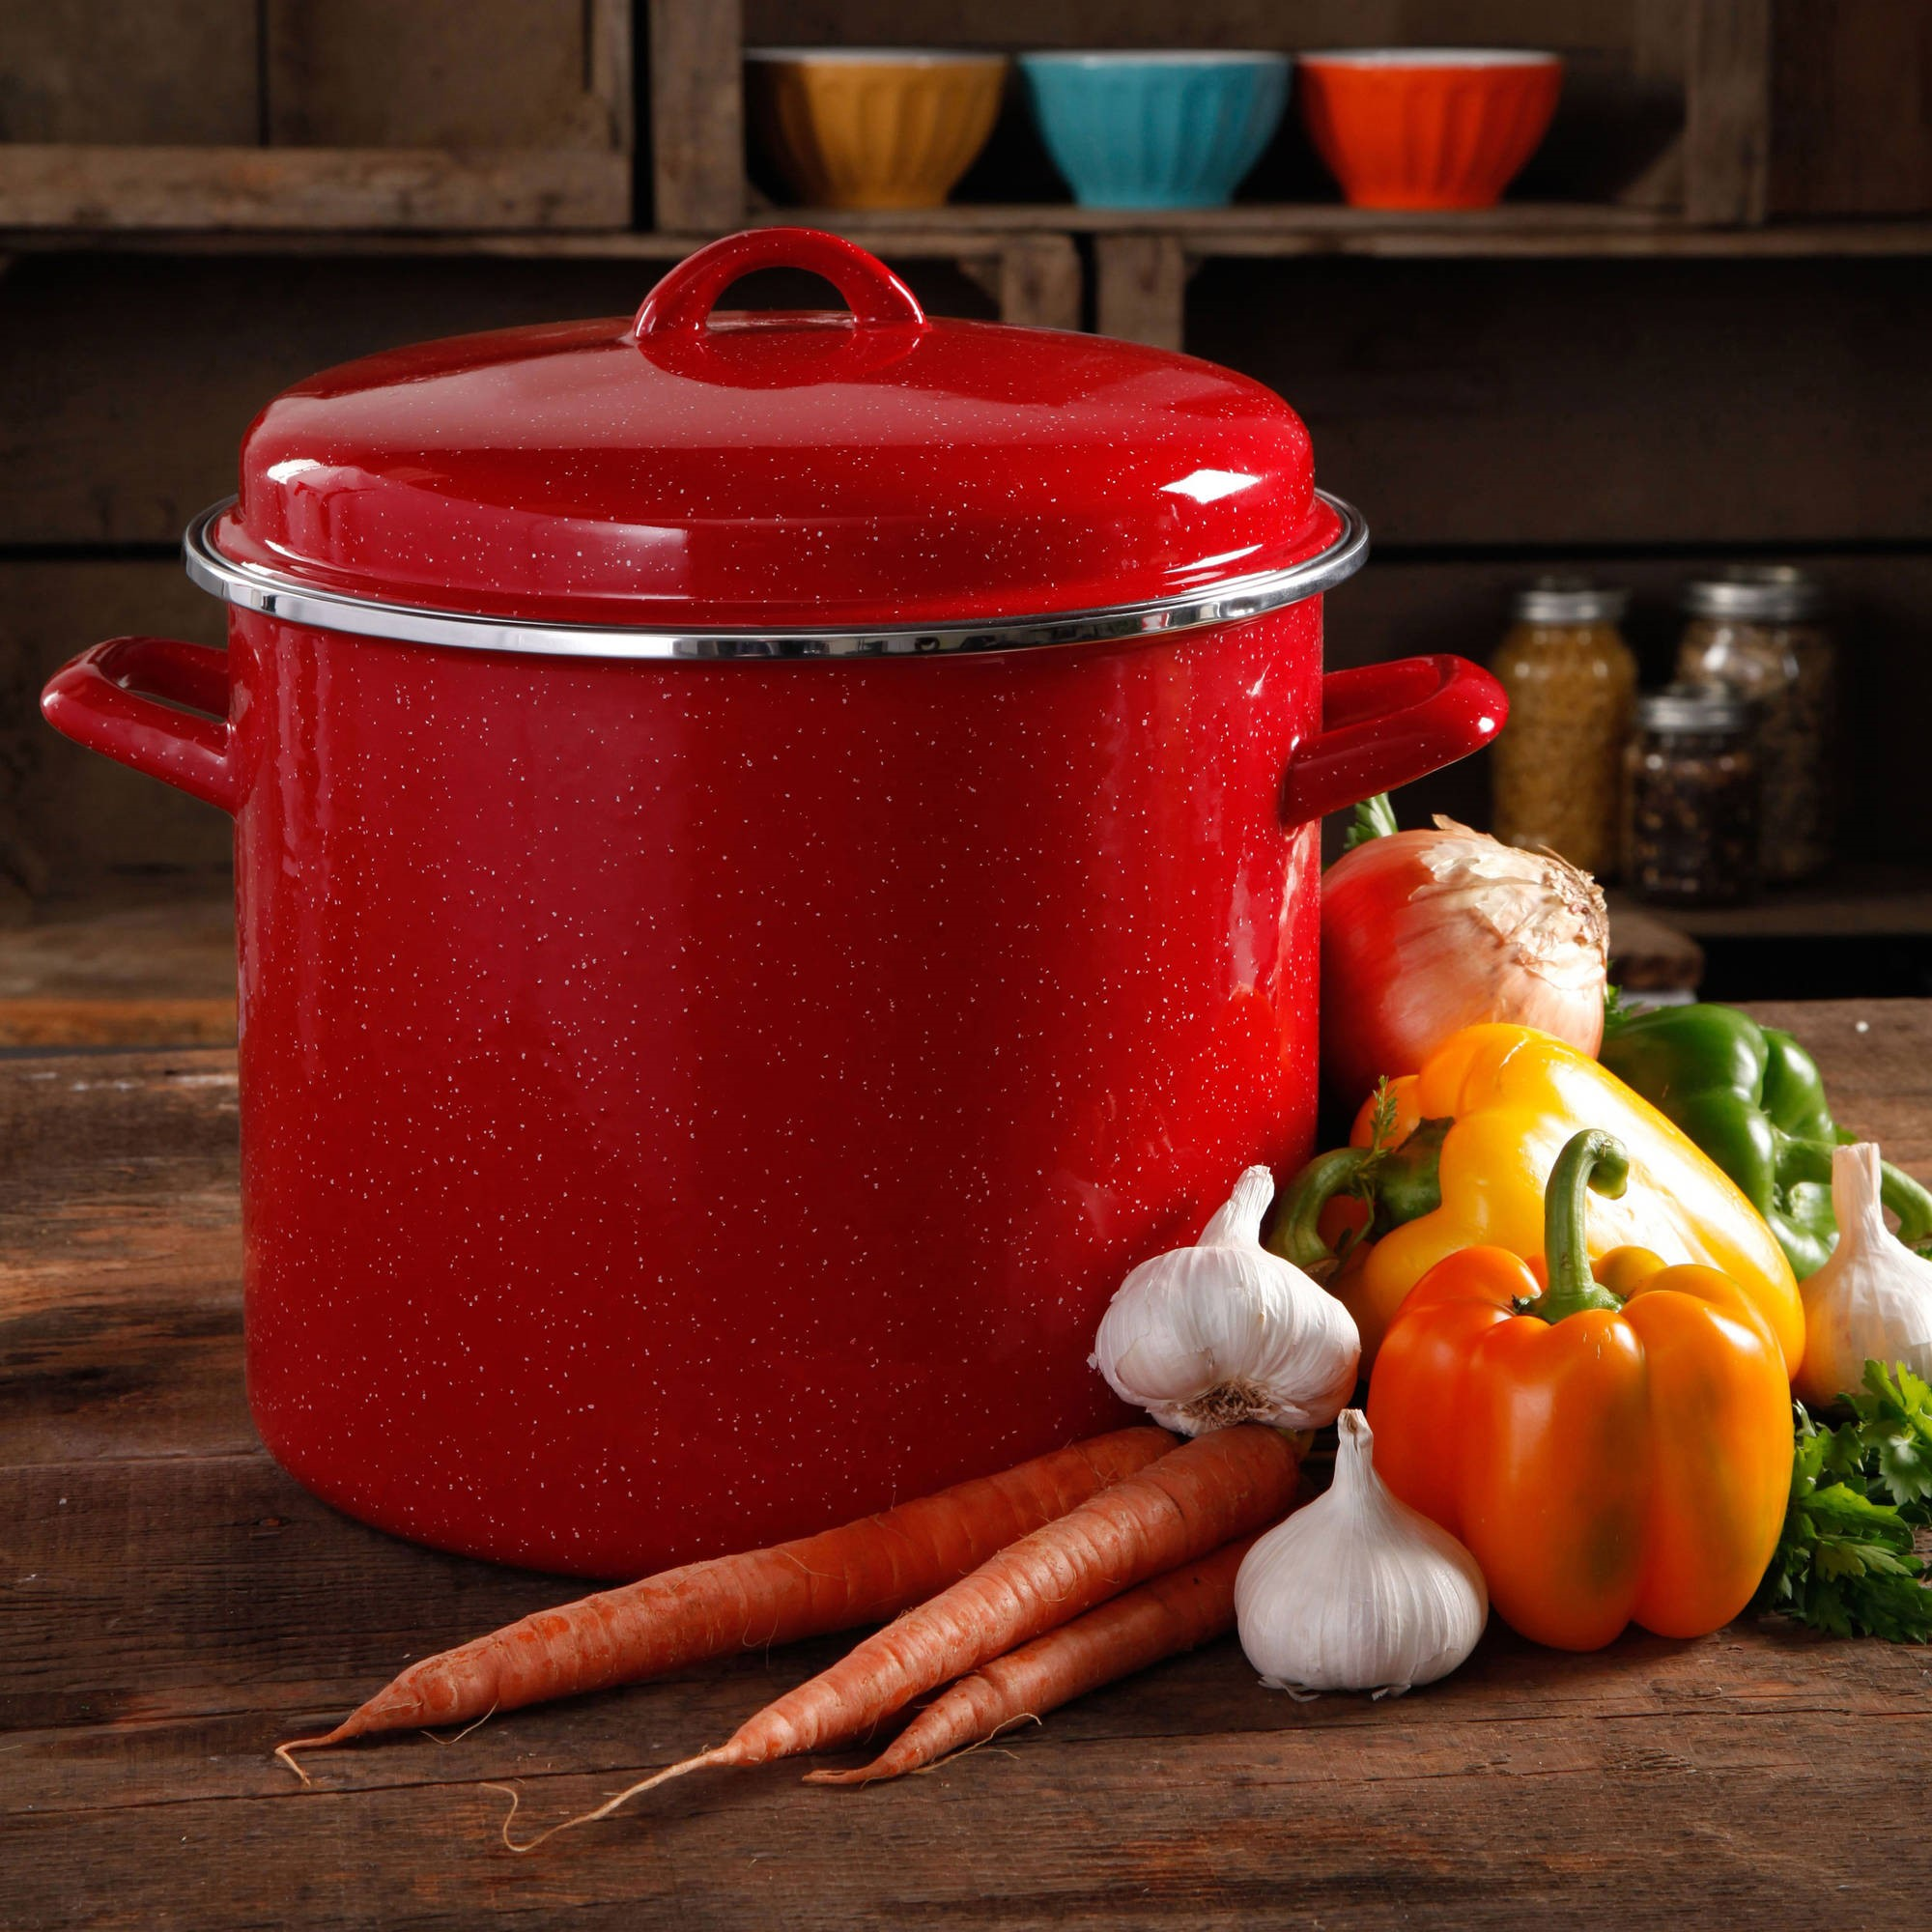 The Pioneer Woman Vintage Speckle 12-Quart Stock Pot with Hollow Side Handles